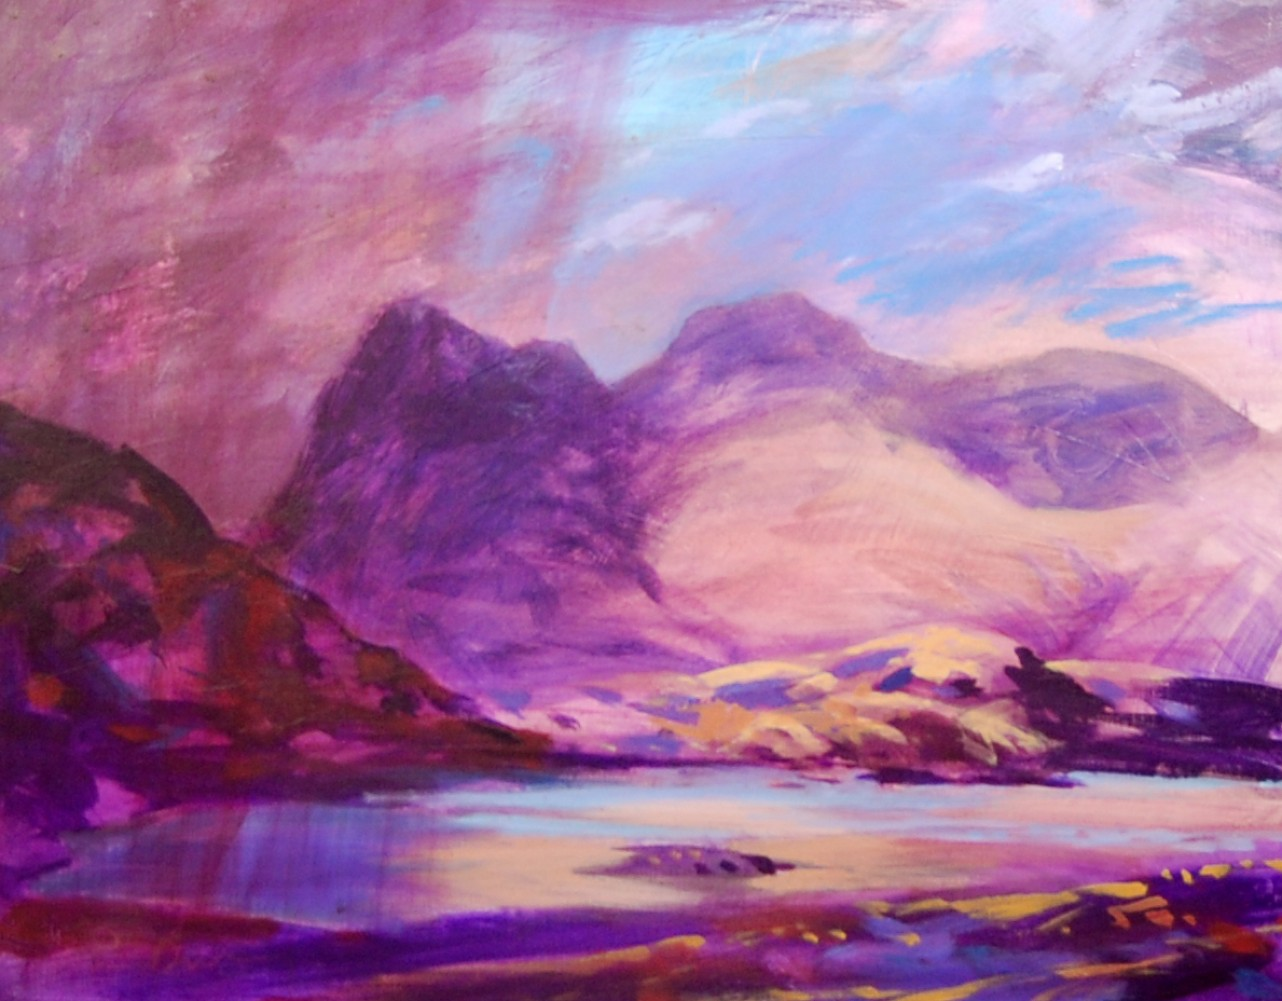 Columns of Rain, Shafts of Light - Langdale Pikes 2001 62x77